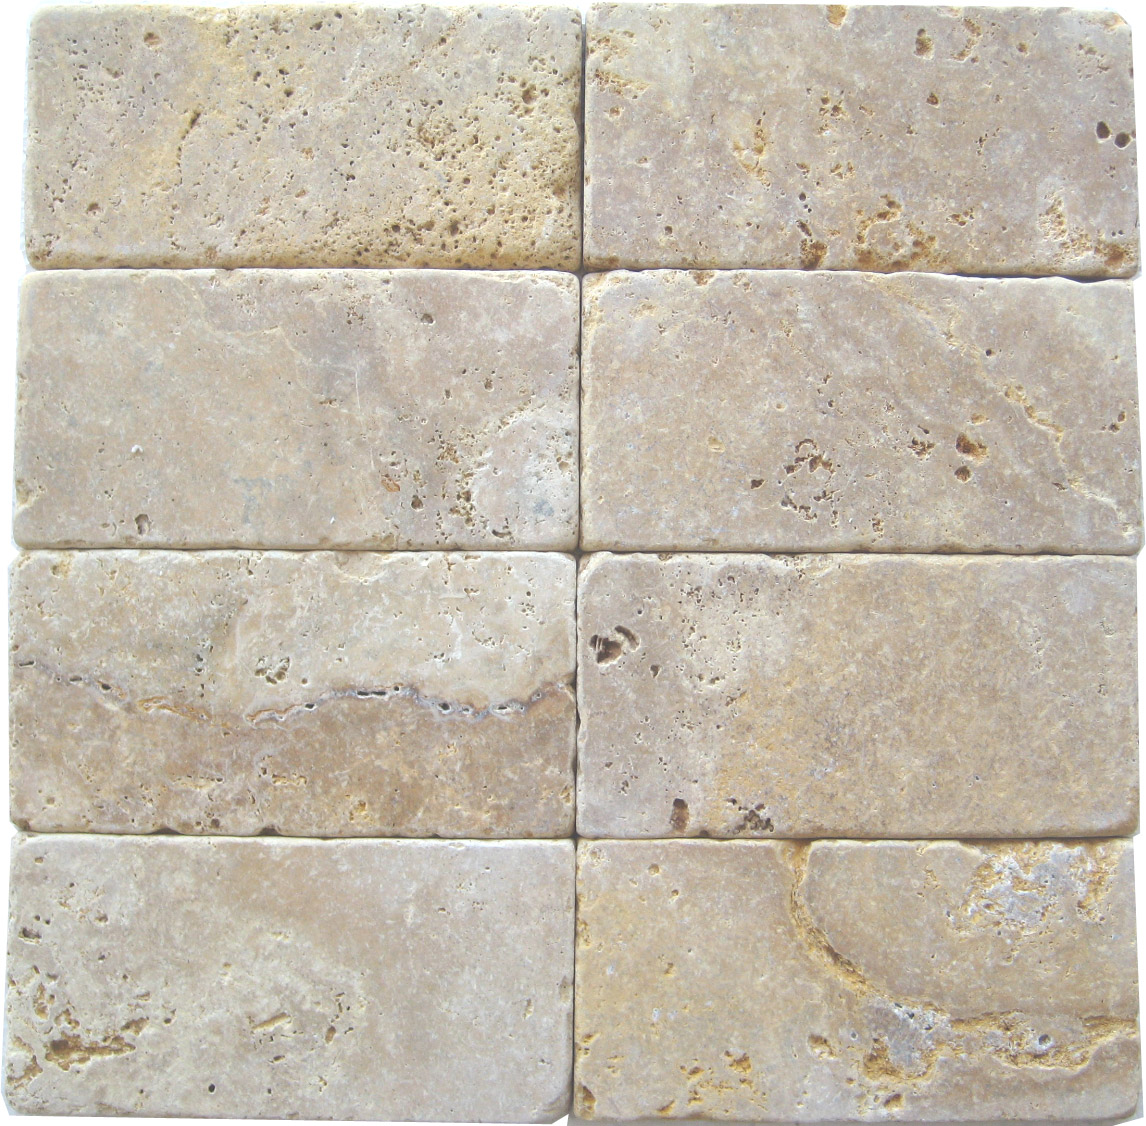 Tumbled Stone Tile For Backsplash Designs Nalboor